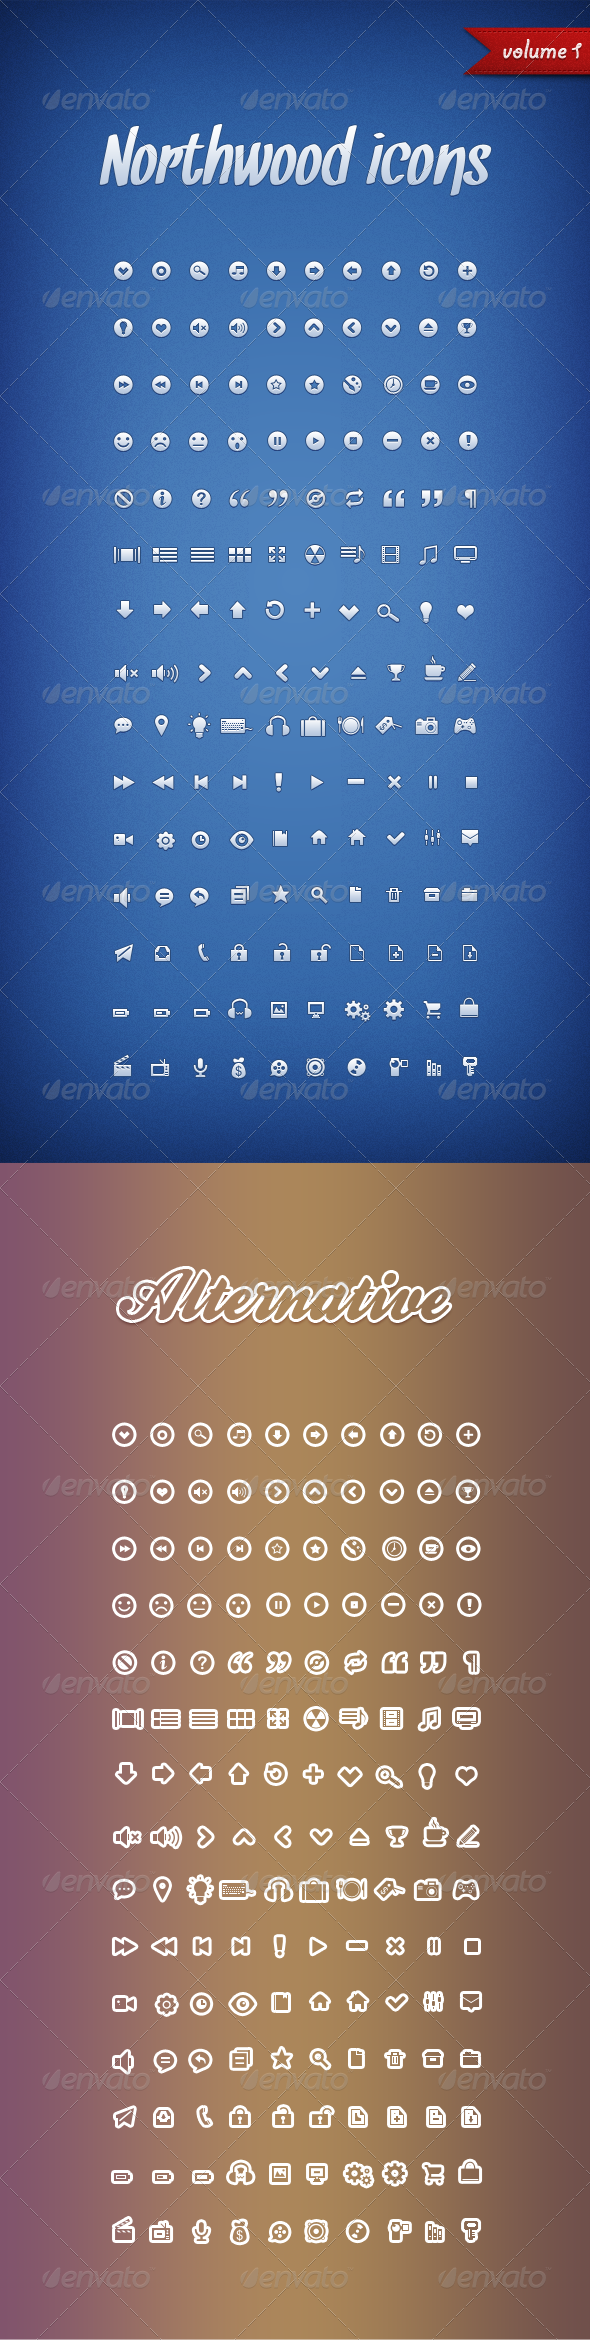 Northwood Icons Volume 1 - Web Icons